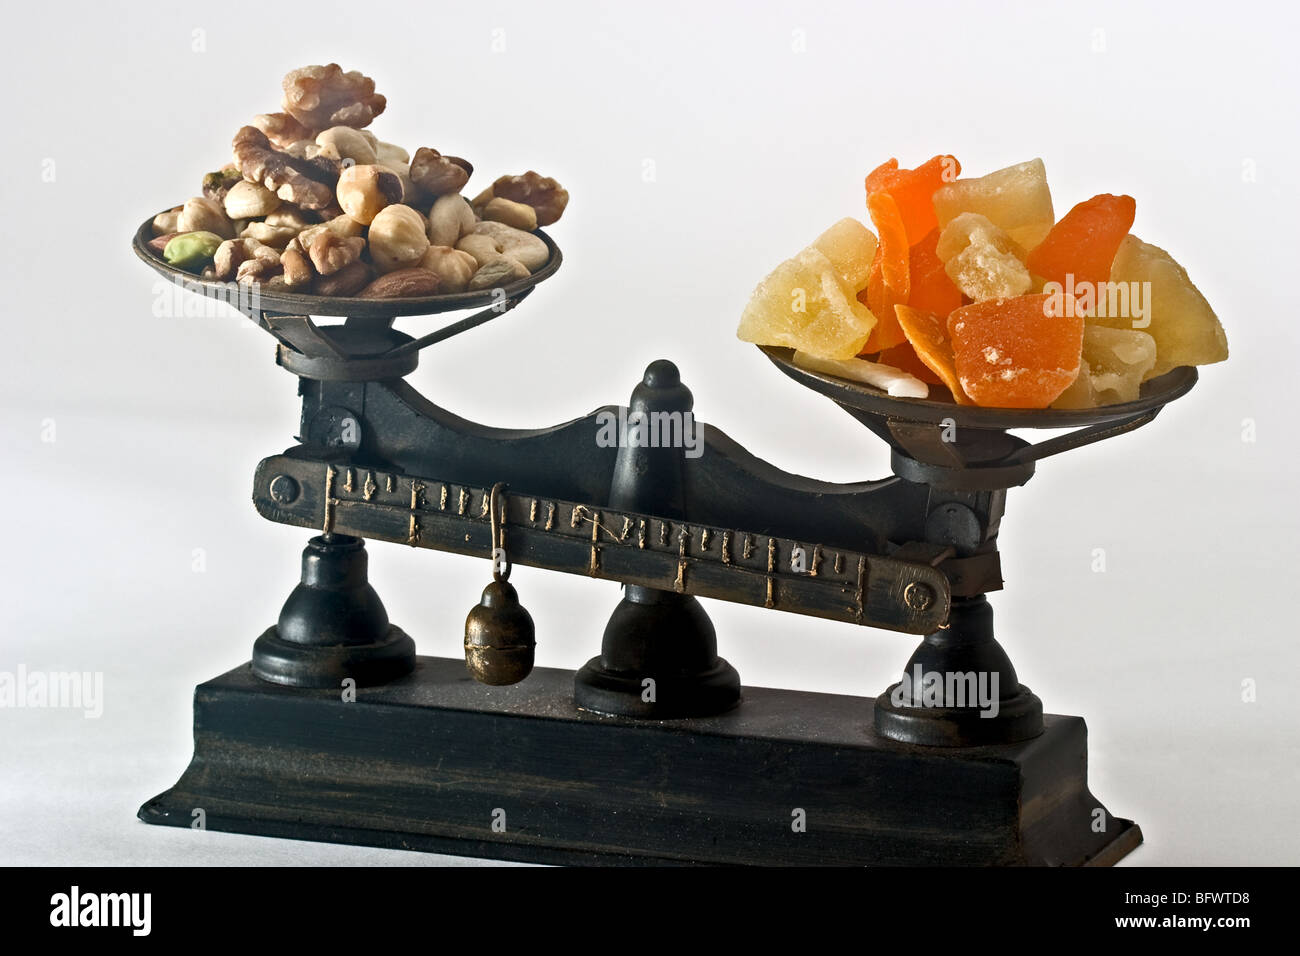 Balance scale with a pile of cut fruit on one side and a pile of mixed nuts on the other - Stock Image